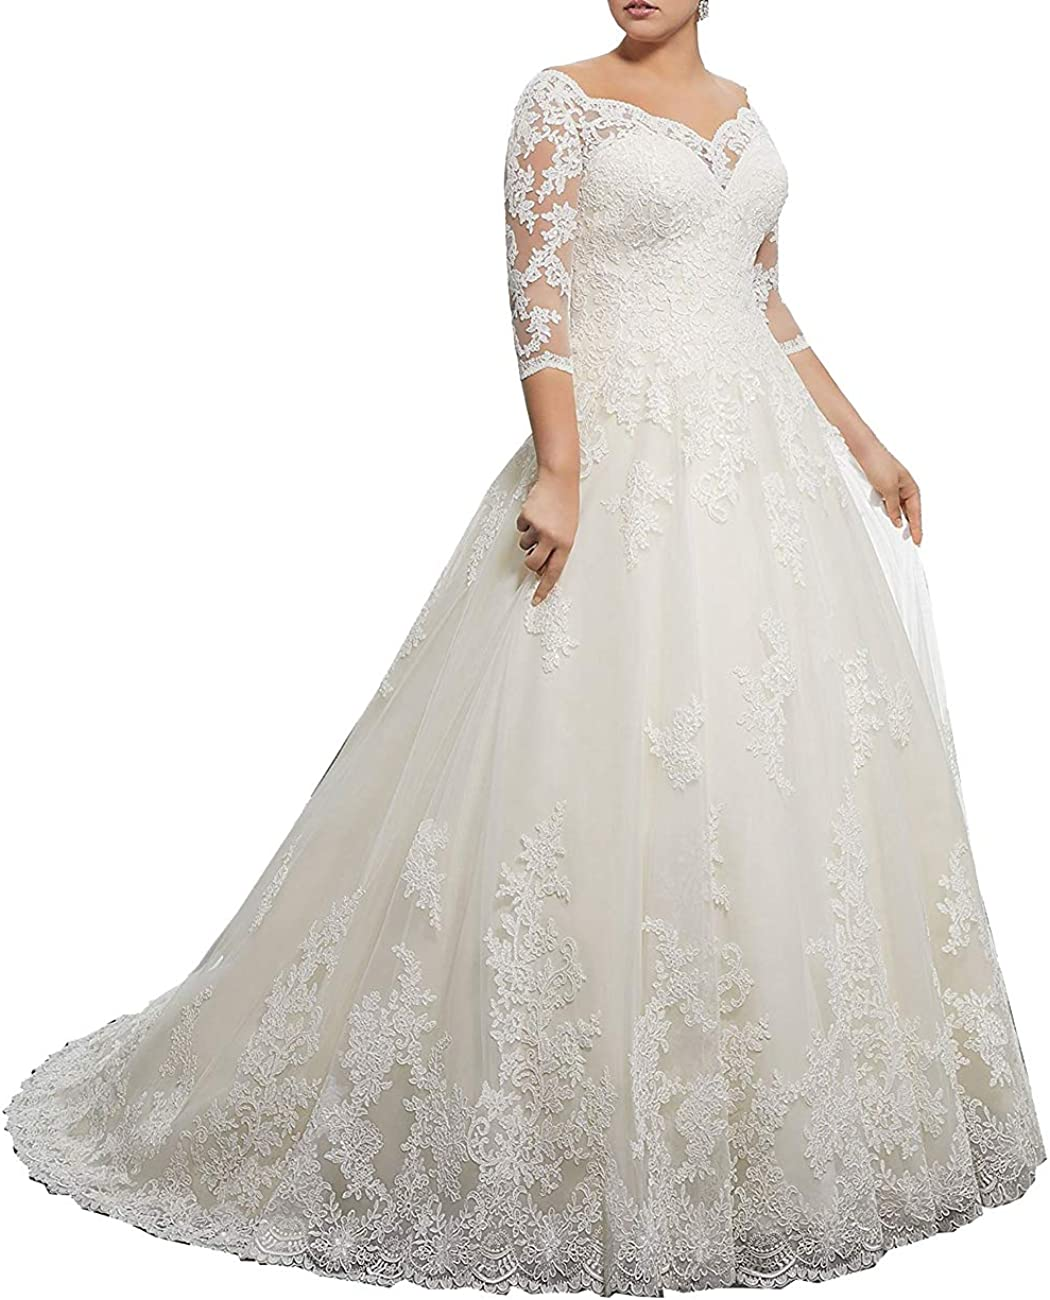 Wedding Dresses Plus Size Bridal Gown Vintage Lace Wedding Dresses for  Bride with 10/10 Sleeves Ivory US10W